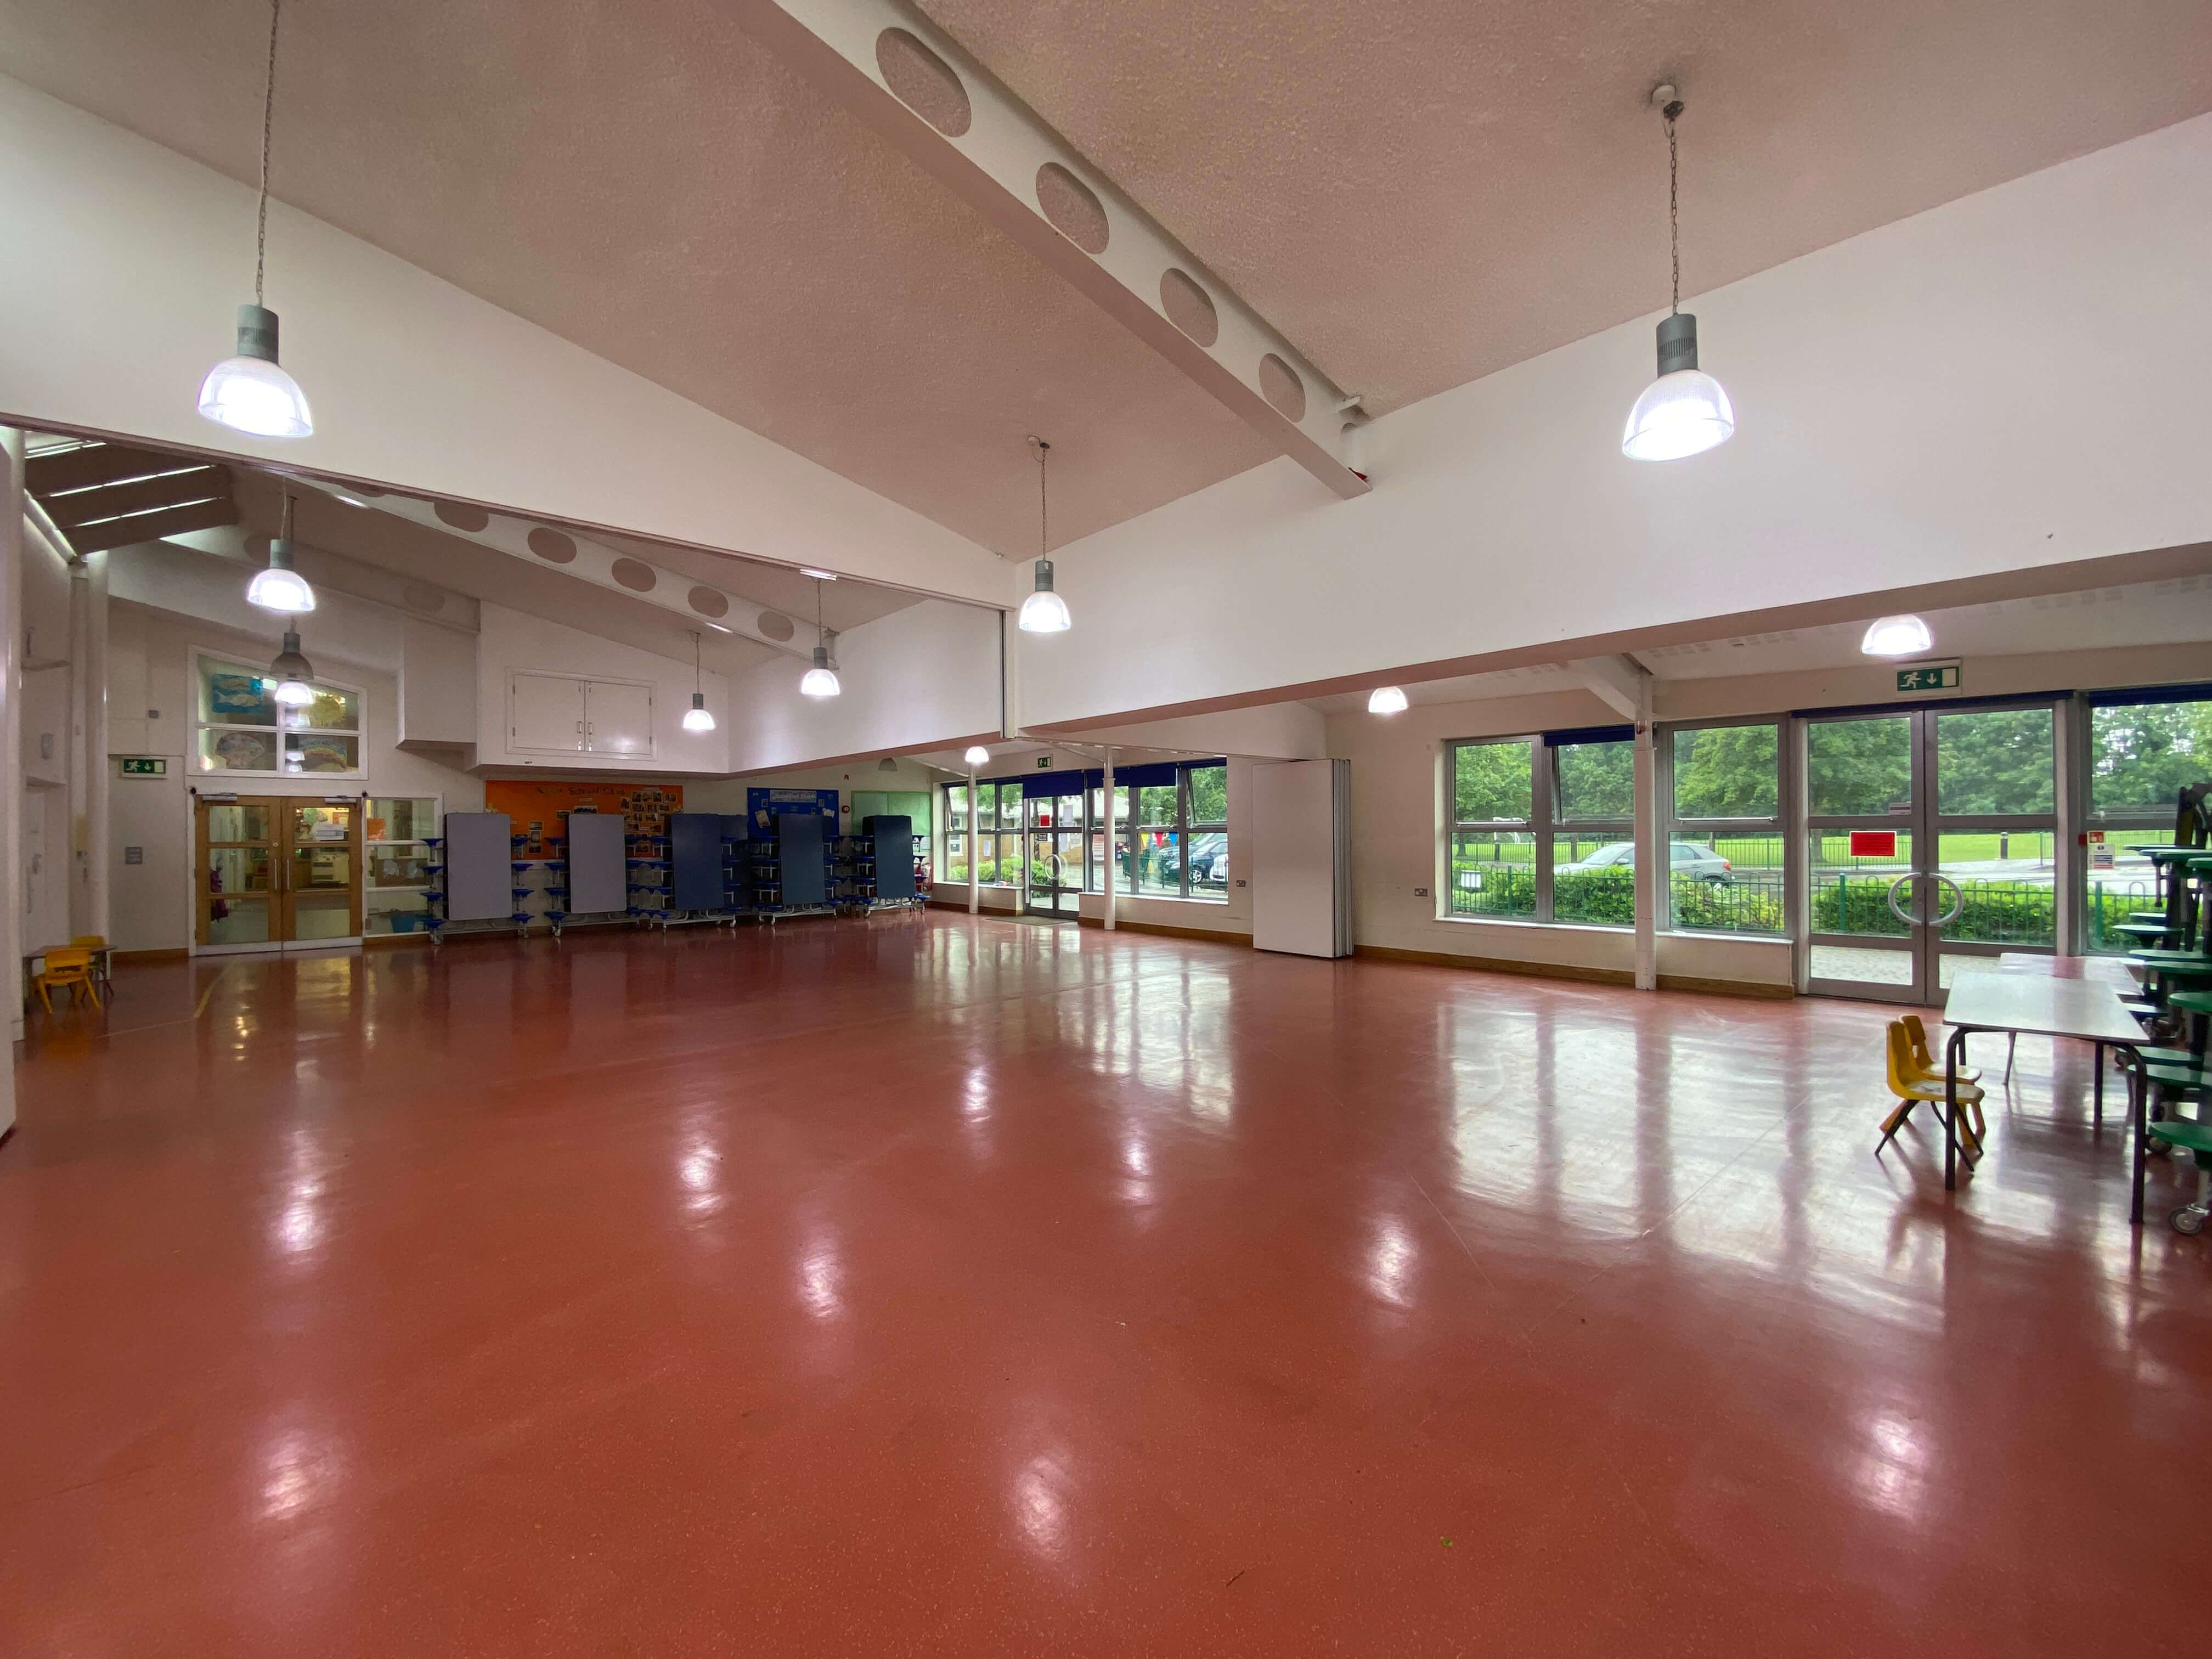 Queenswell Infant & Nursery School Dining Hall